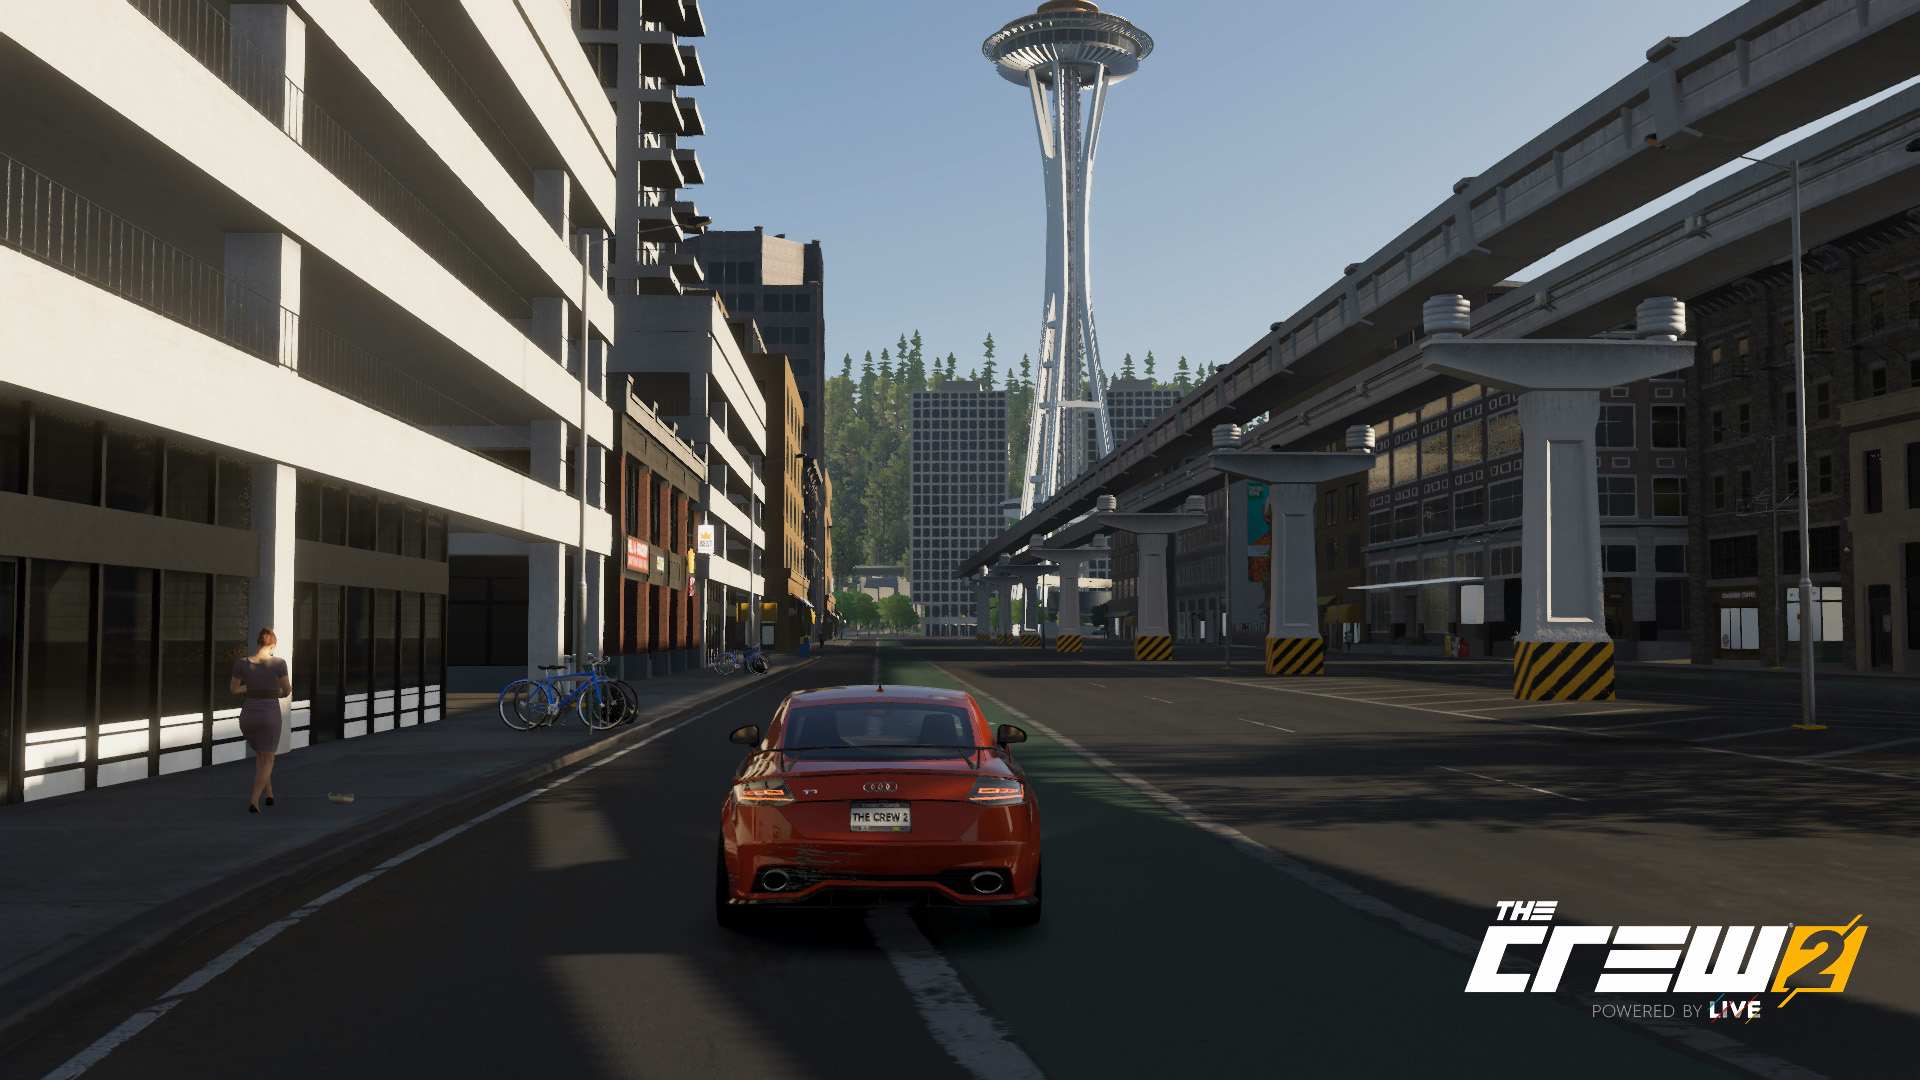 The Crew vs The Crew 2 Visual Comparison Doesn't Reveal the Clear